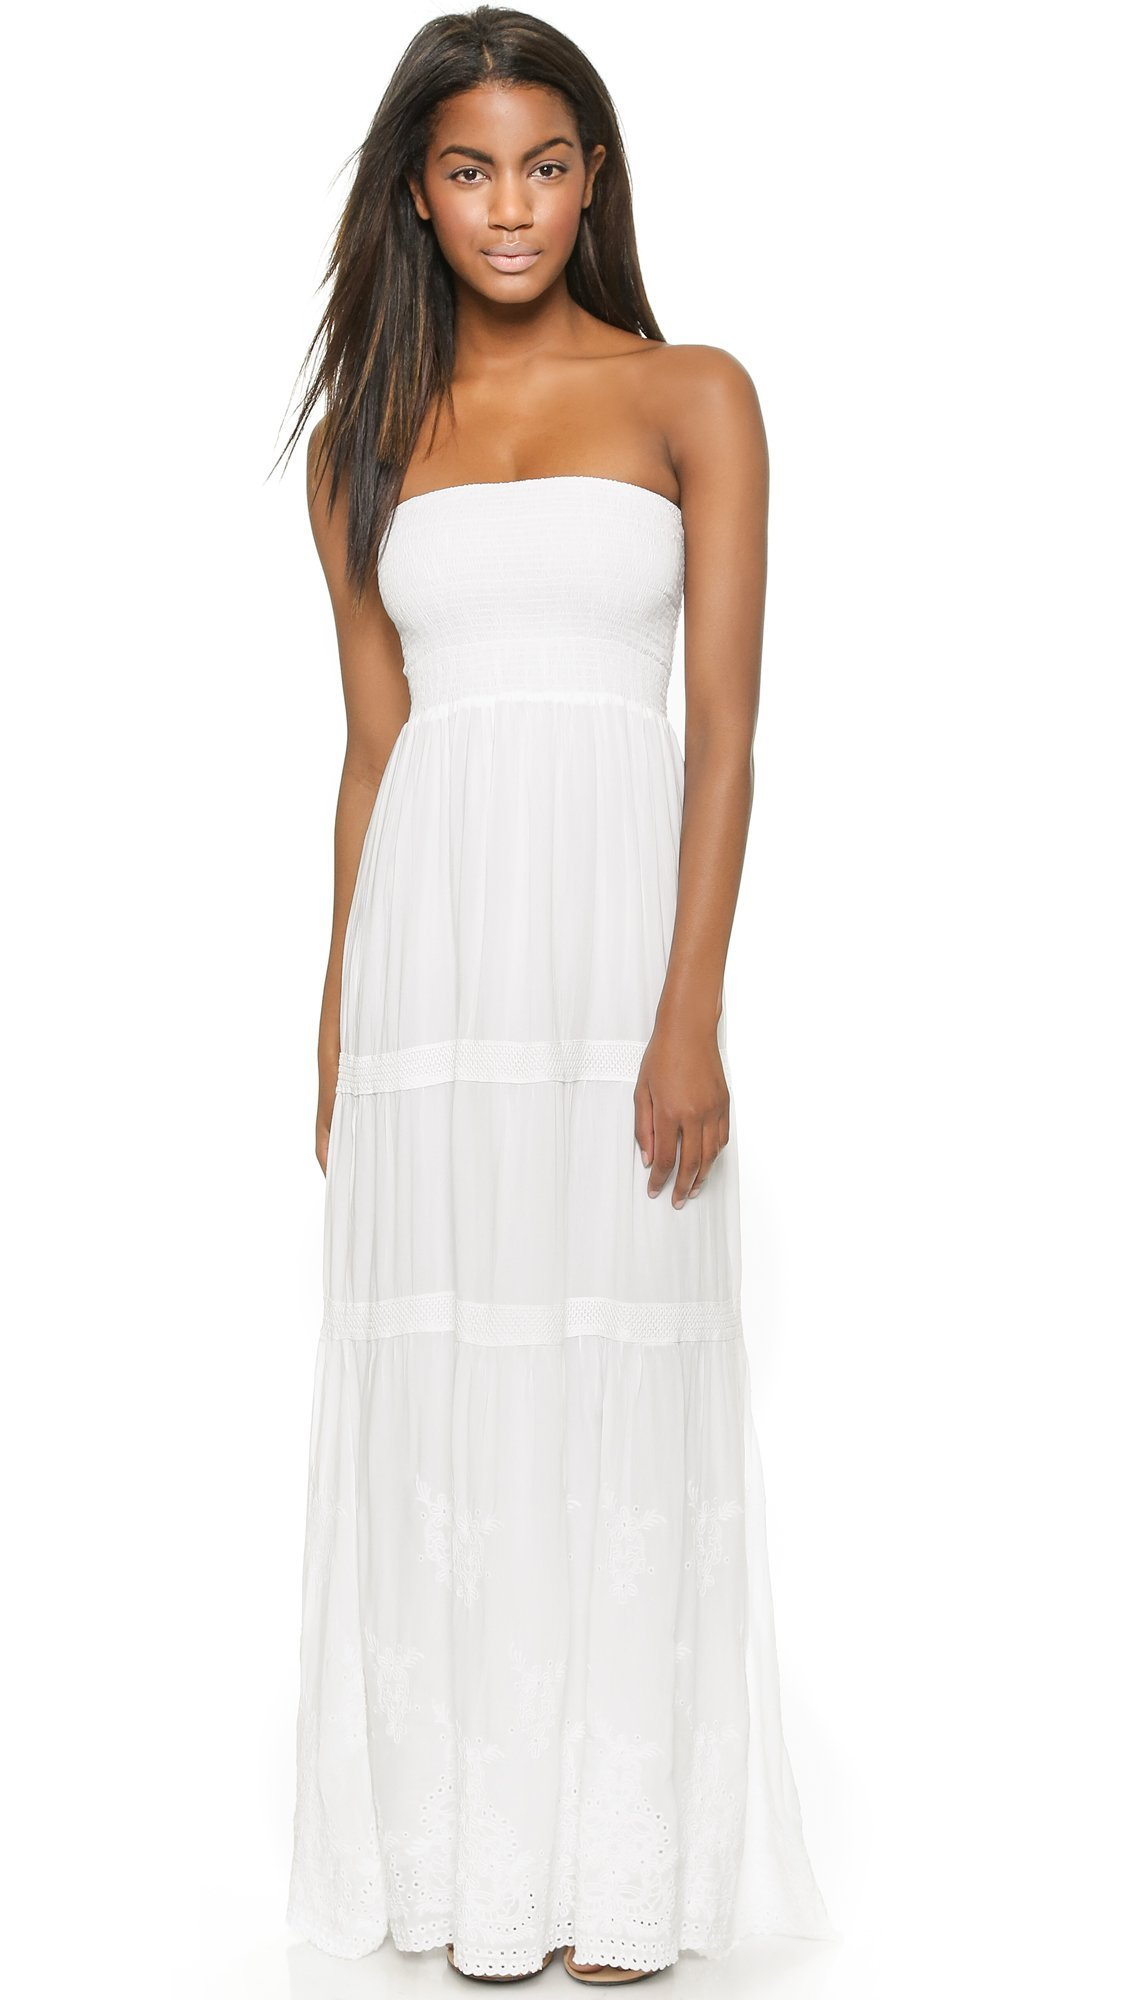 Melissa Odabash Women's Marian Cover Up Maxi Dress, White, Small